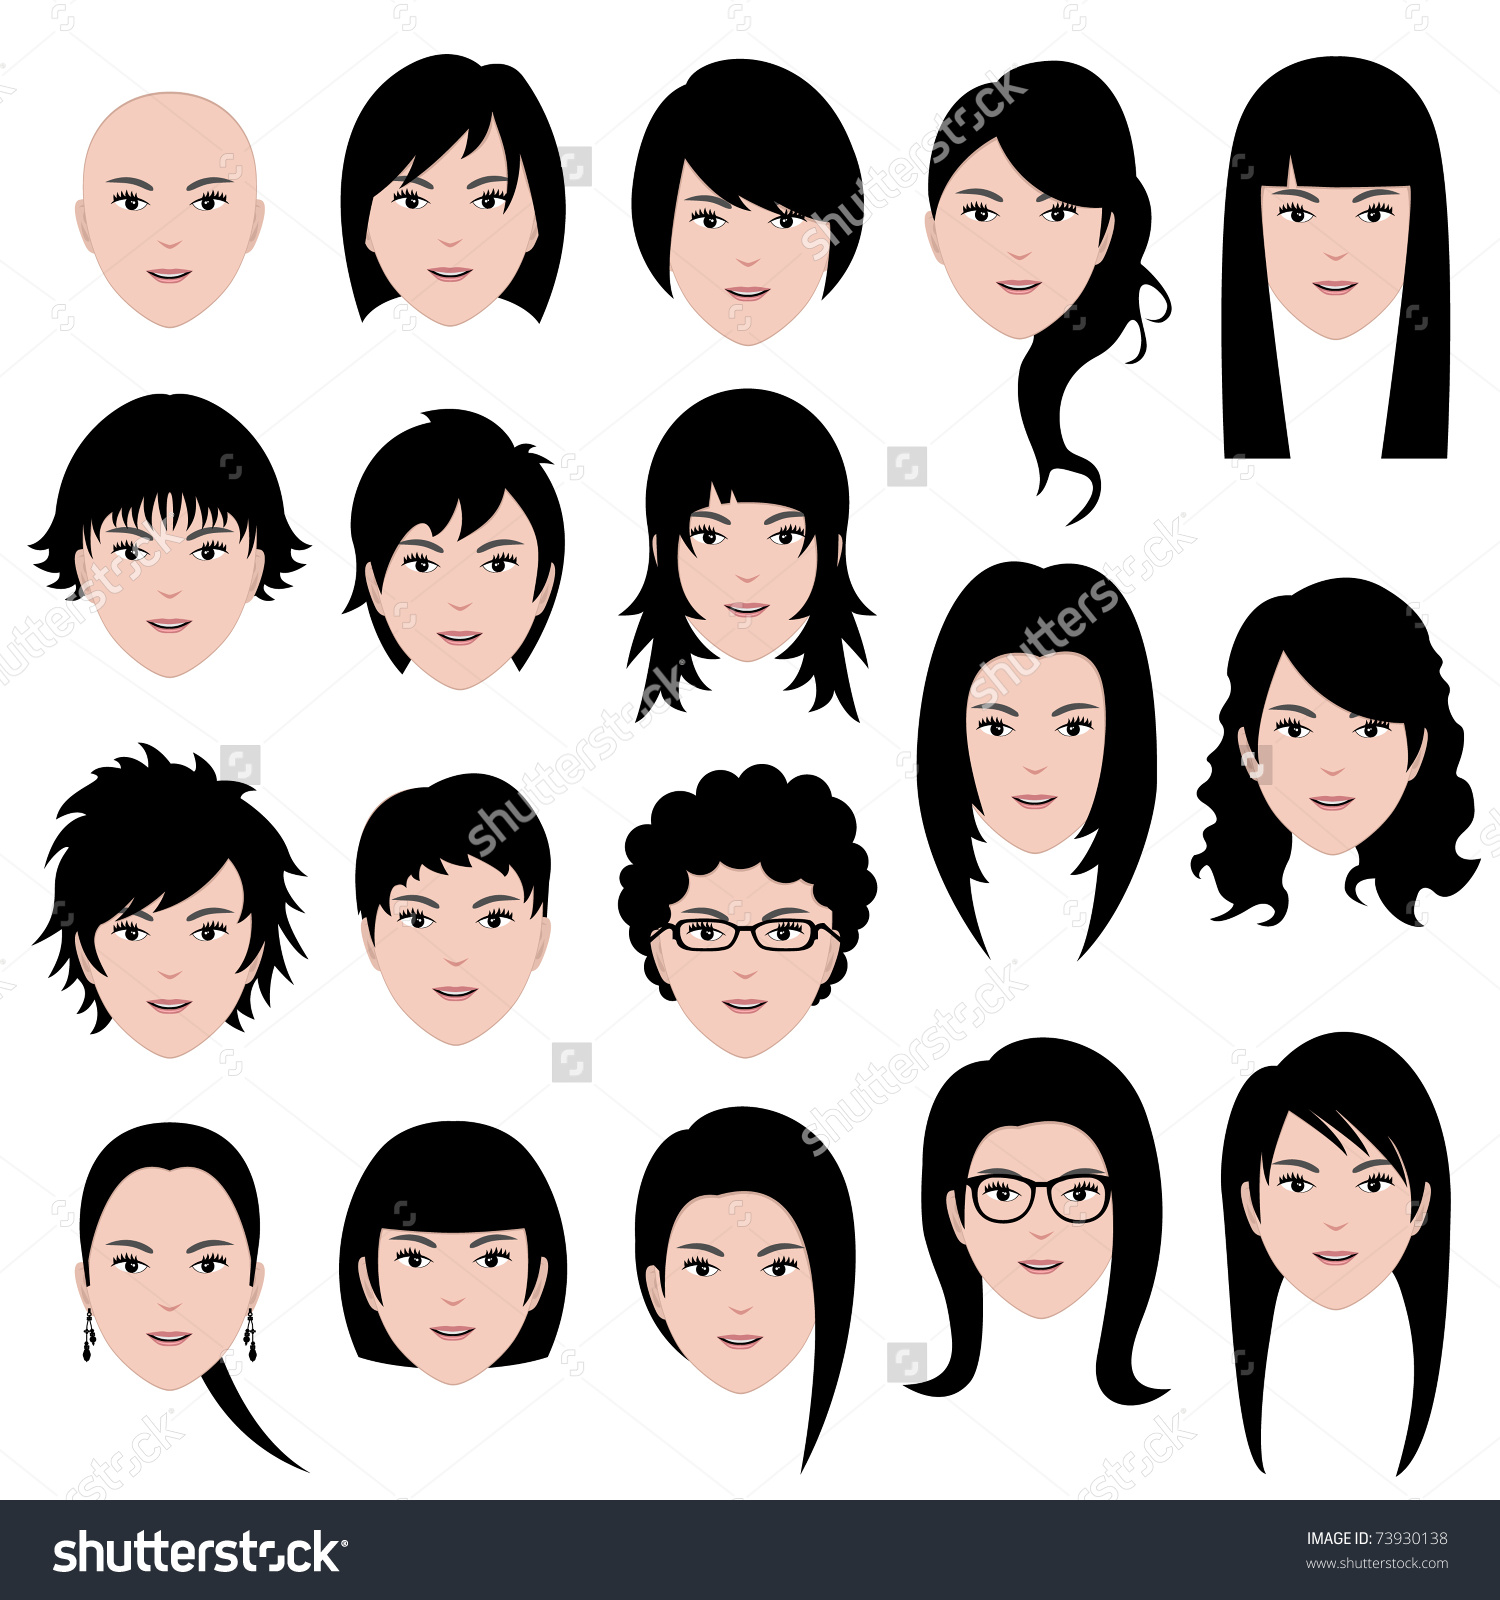 Woman Female Human Face Head Hair Stock Illustration 73930138.